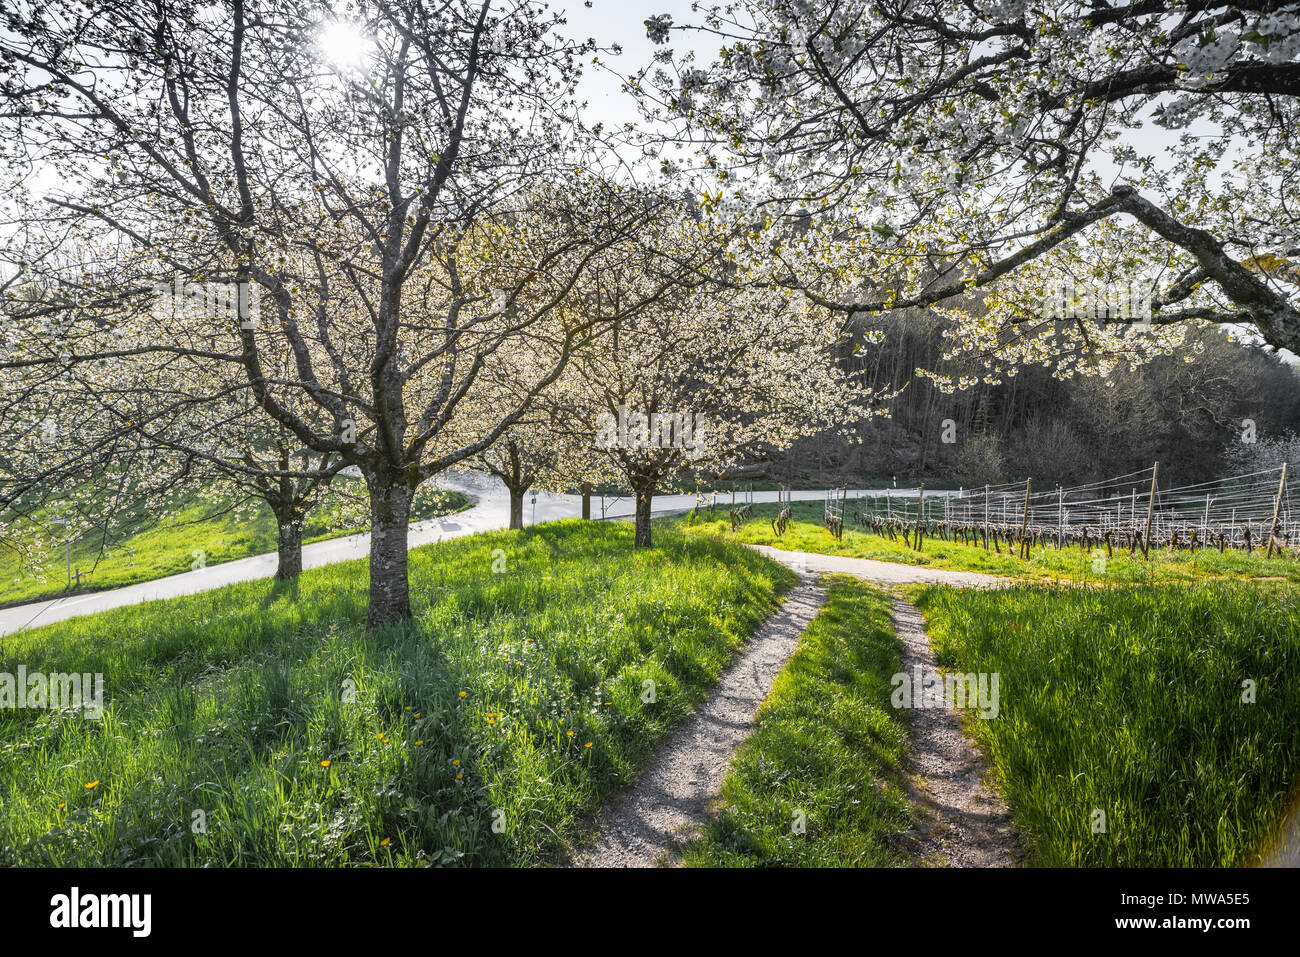 Spring in the foothills of the Black Forest, resort town, Sasbachwalden, Germany, vineyard and blooming fruit trees, Black Forest kirsch trees Stock Photo